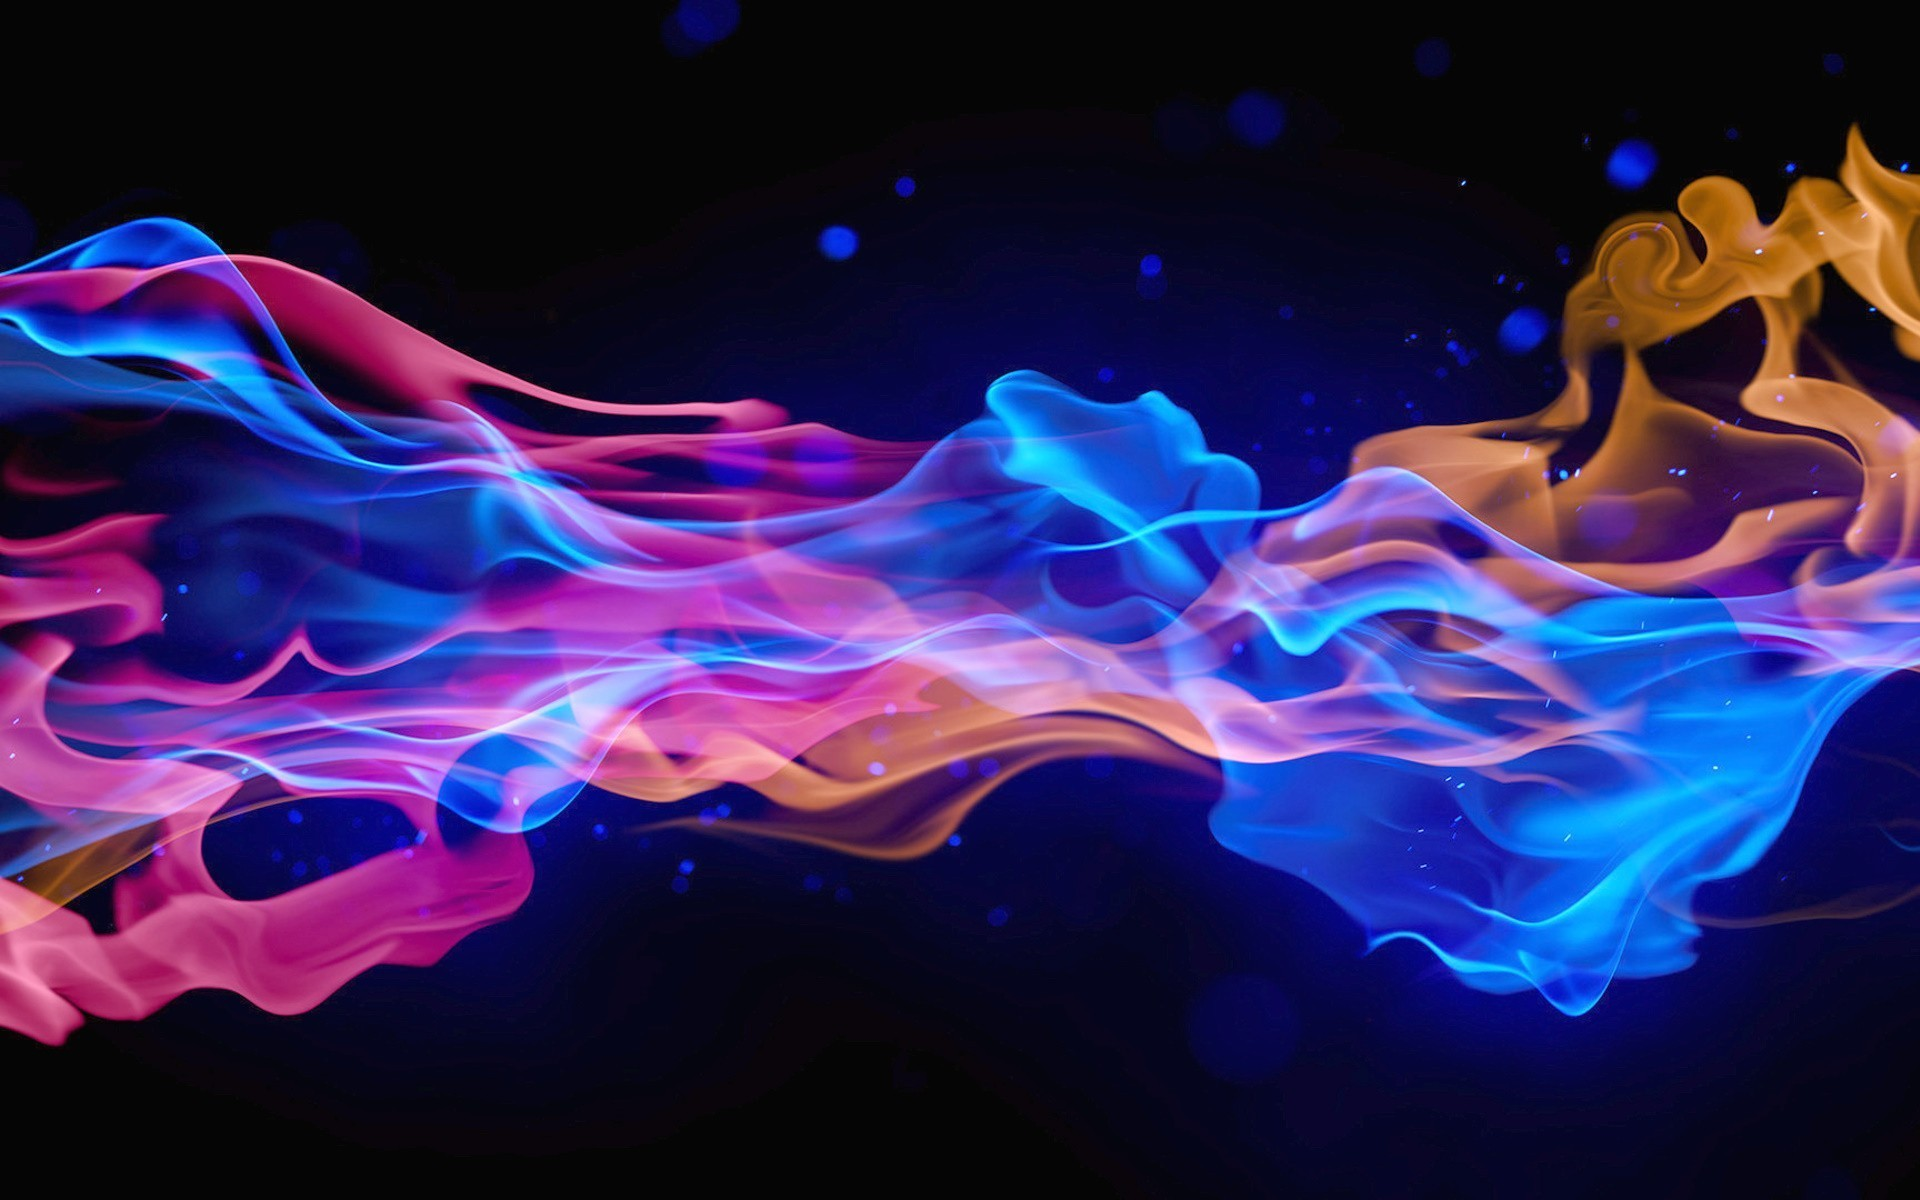 Colored Smoke Wallpaper (70+ images)